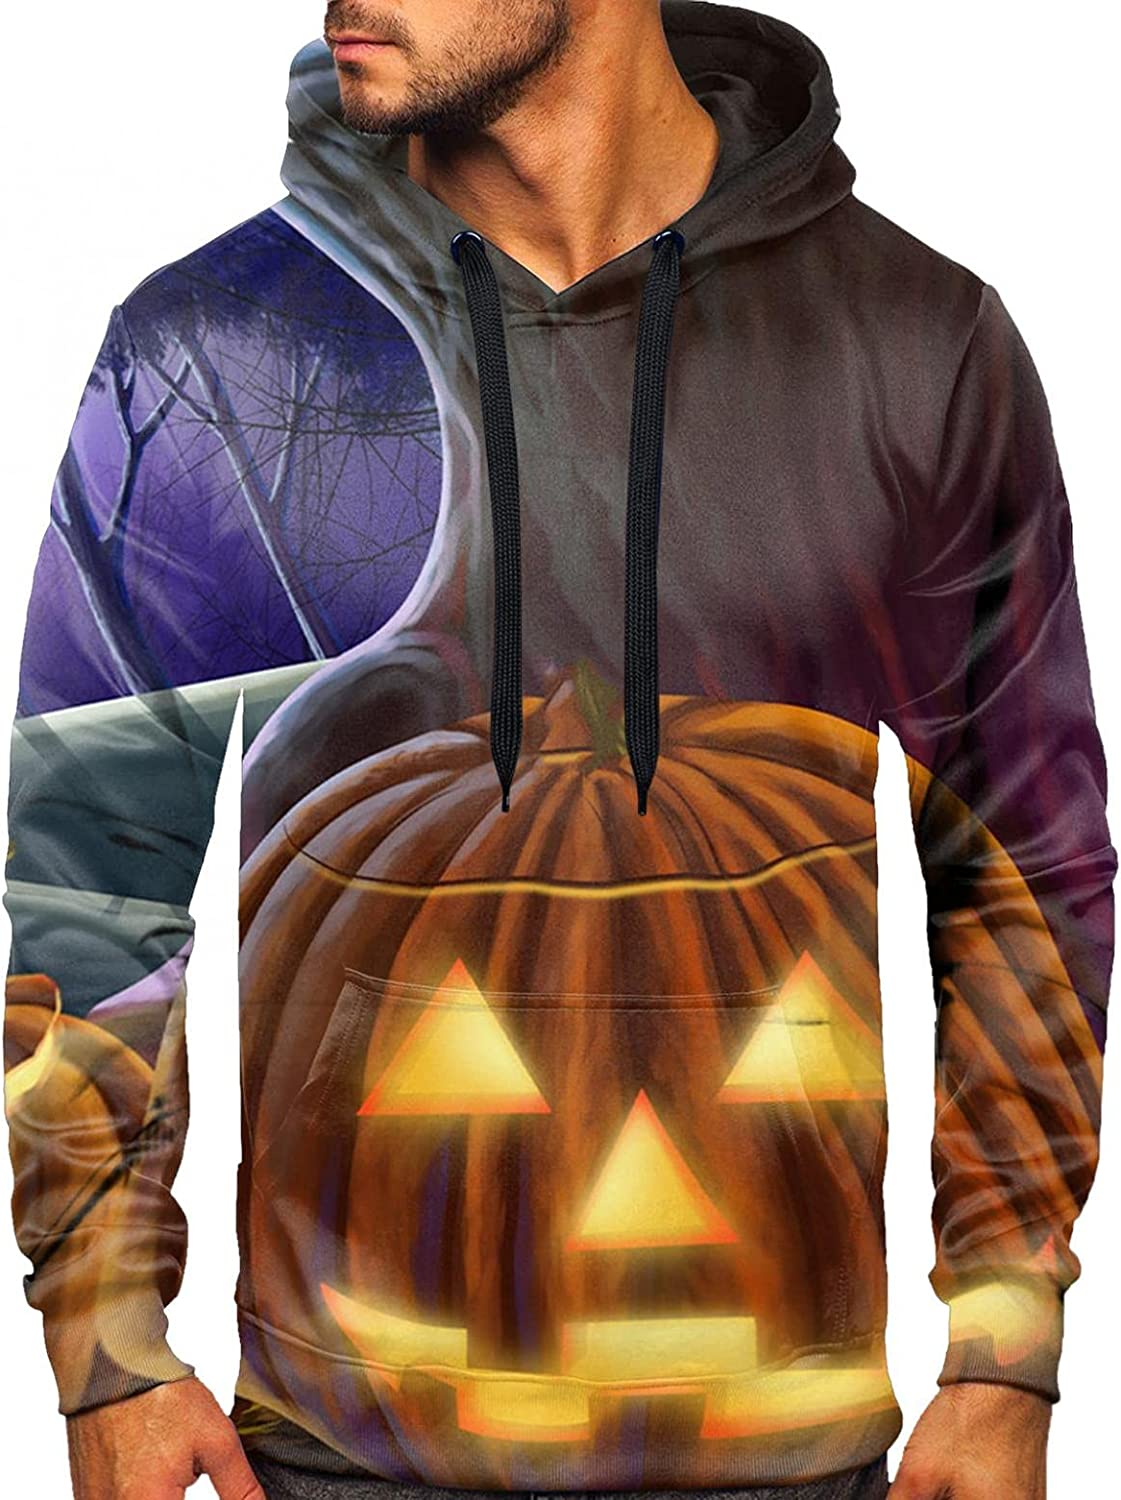 Mens online shop Fashion Hooded Jerseys Long 3D 67% OFF of fixed price Printing Halloween Sleeve Sp